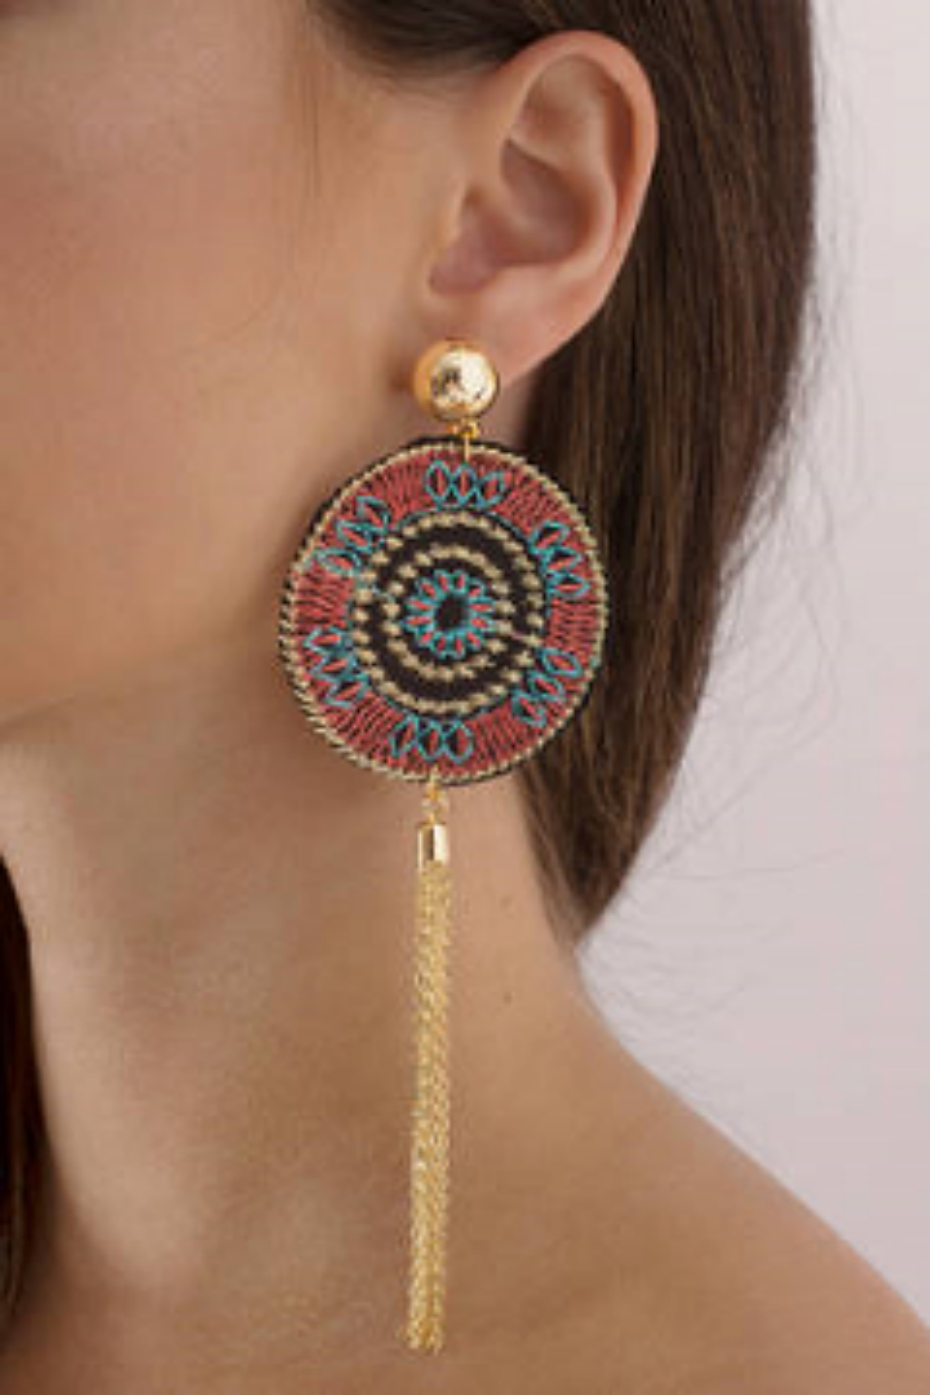 coachella-accessories-tobi-cayman-island-tassel-earrings-040418